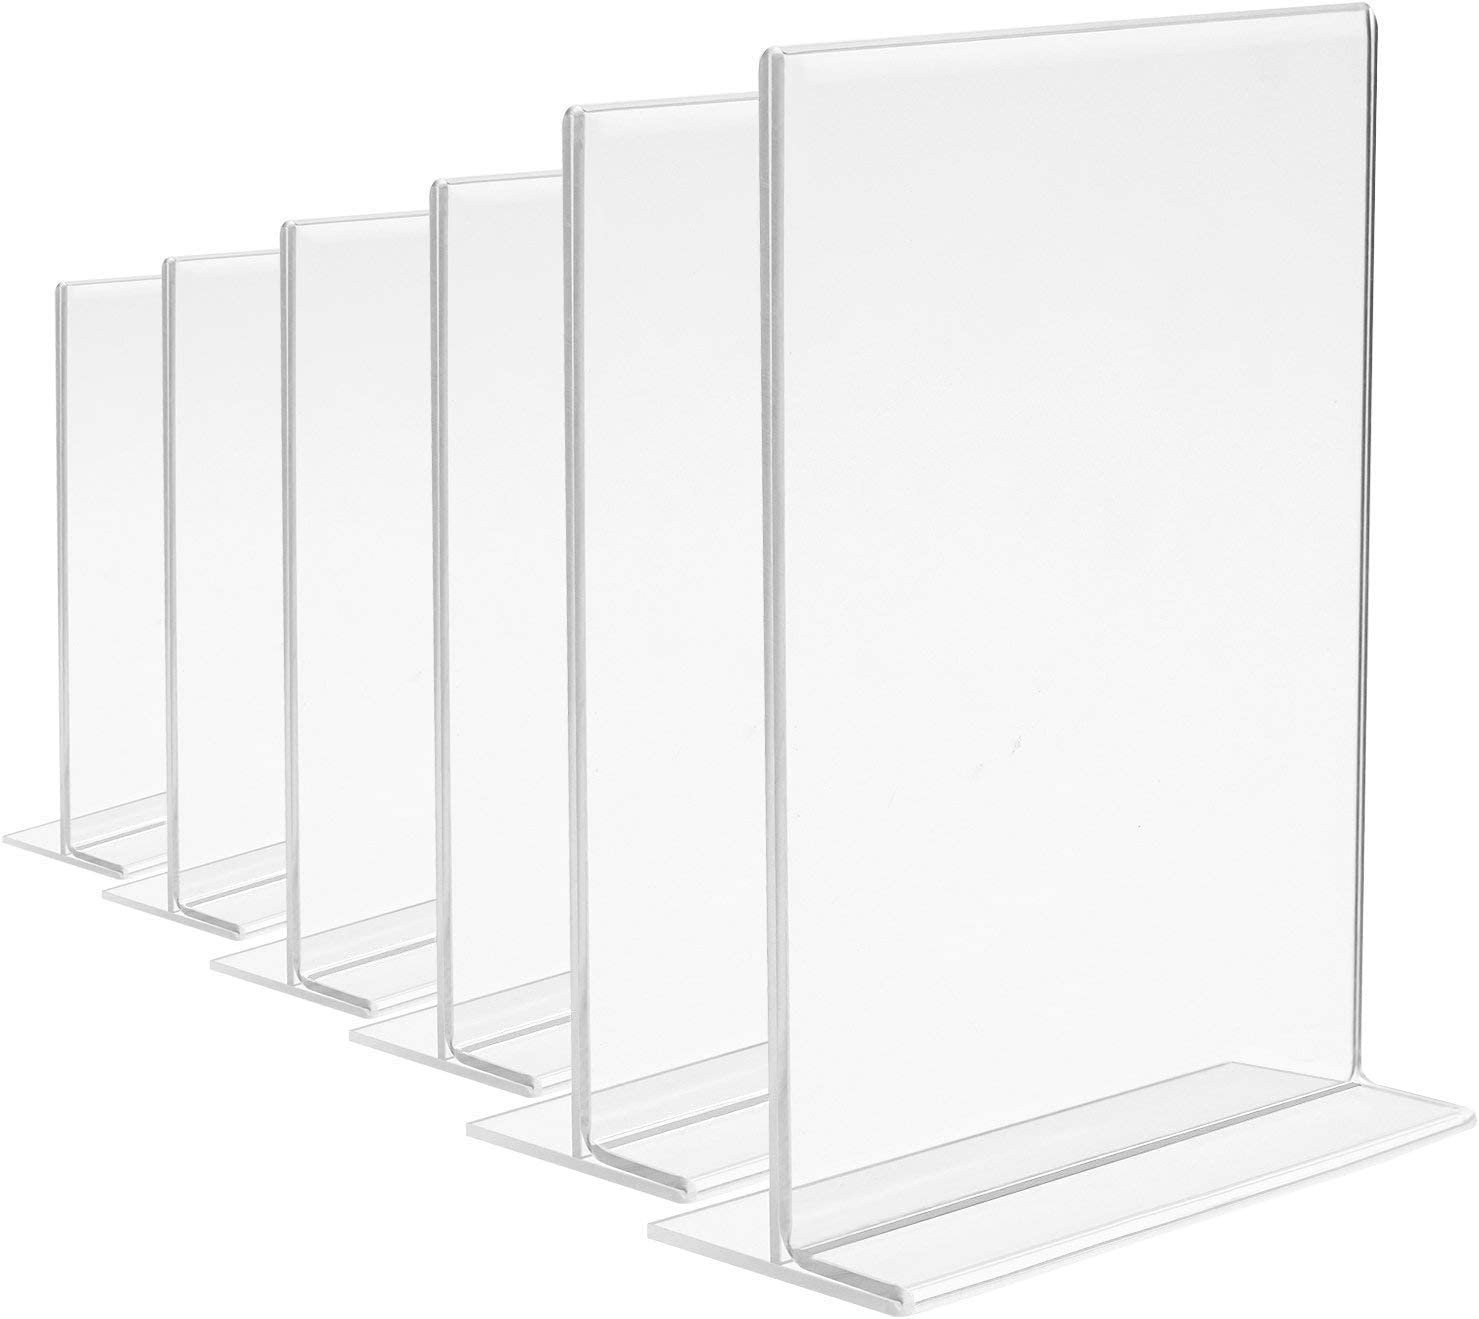 Acrylic Sign Holders, MeetU 8.5 x 11 Letter Size Ad Frame Double Sided Plastic Picture Frames Desktop Photo Frames Thick T Shape Vertical Advertisement Display Menu Card Holder (Pack of 6)